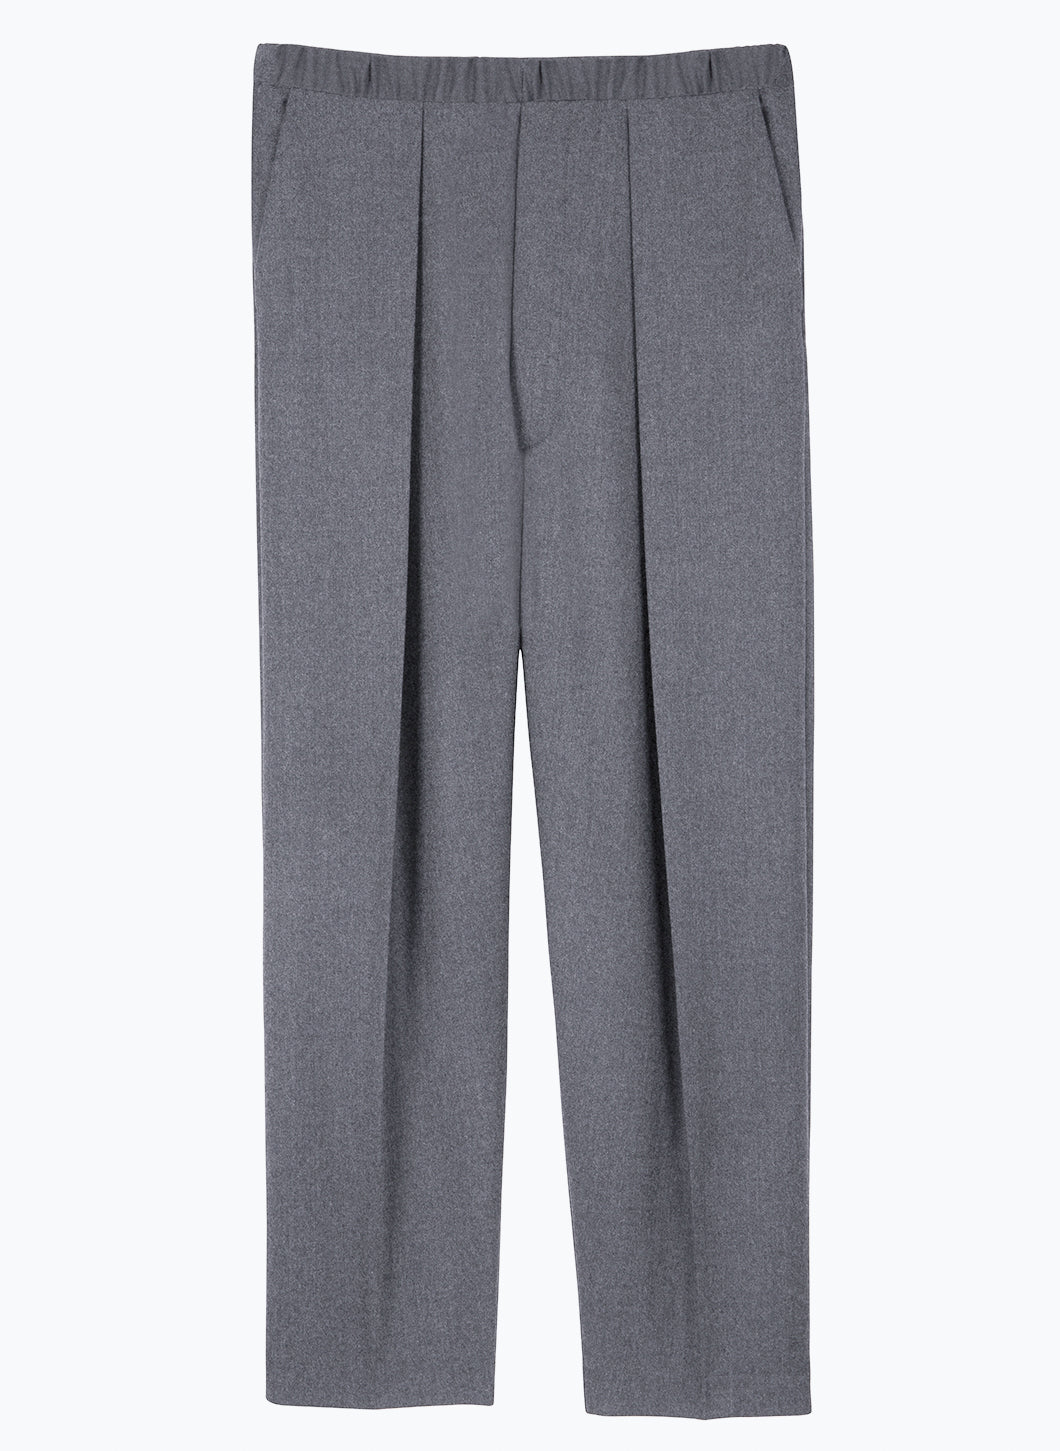 Elastic Waist Pants with Deep Pleats in Grey Flannel Wool